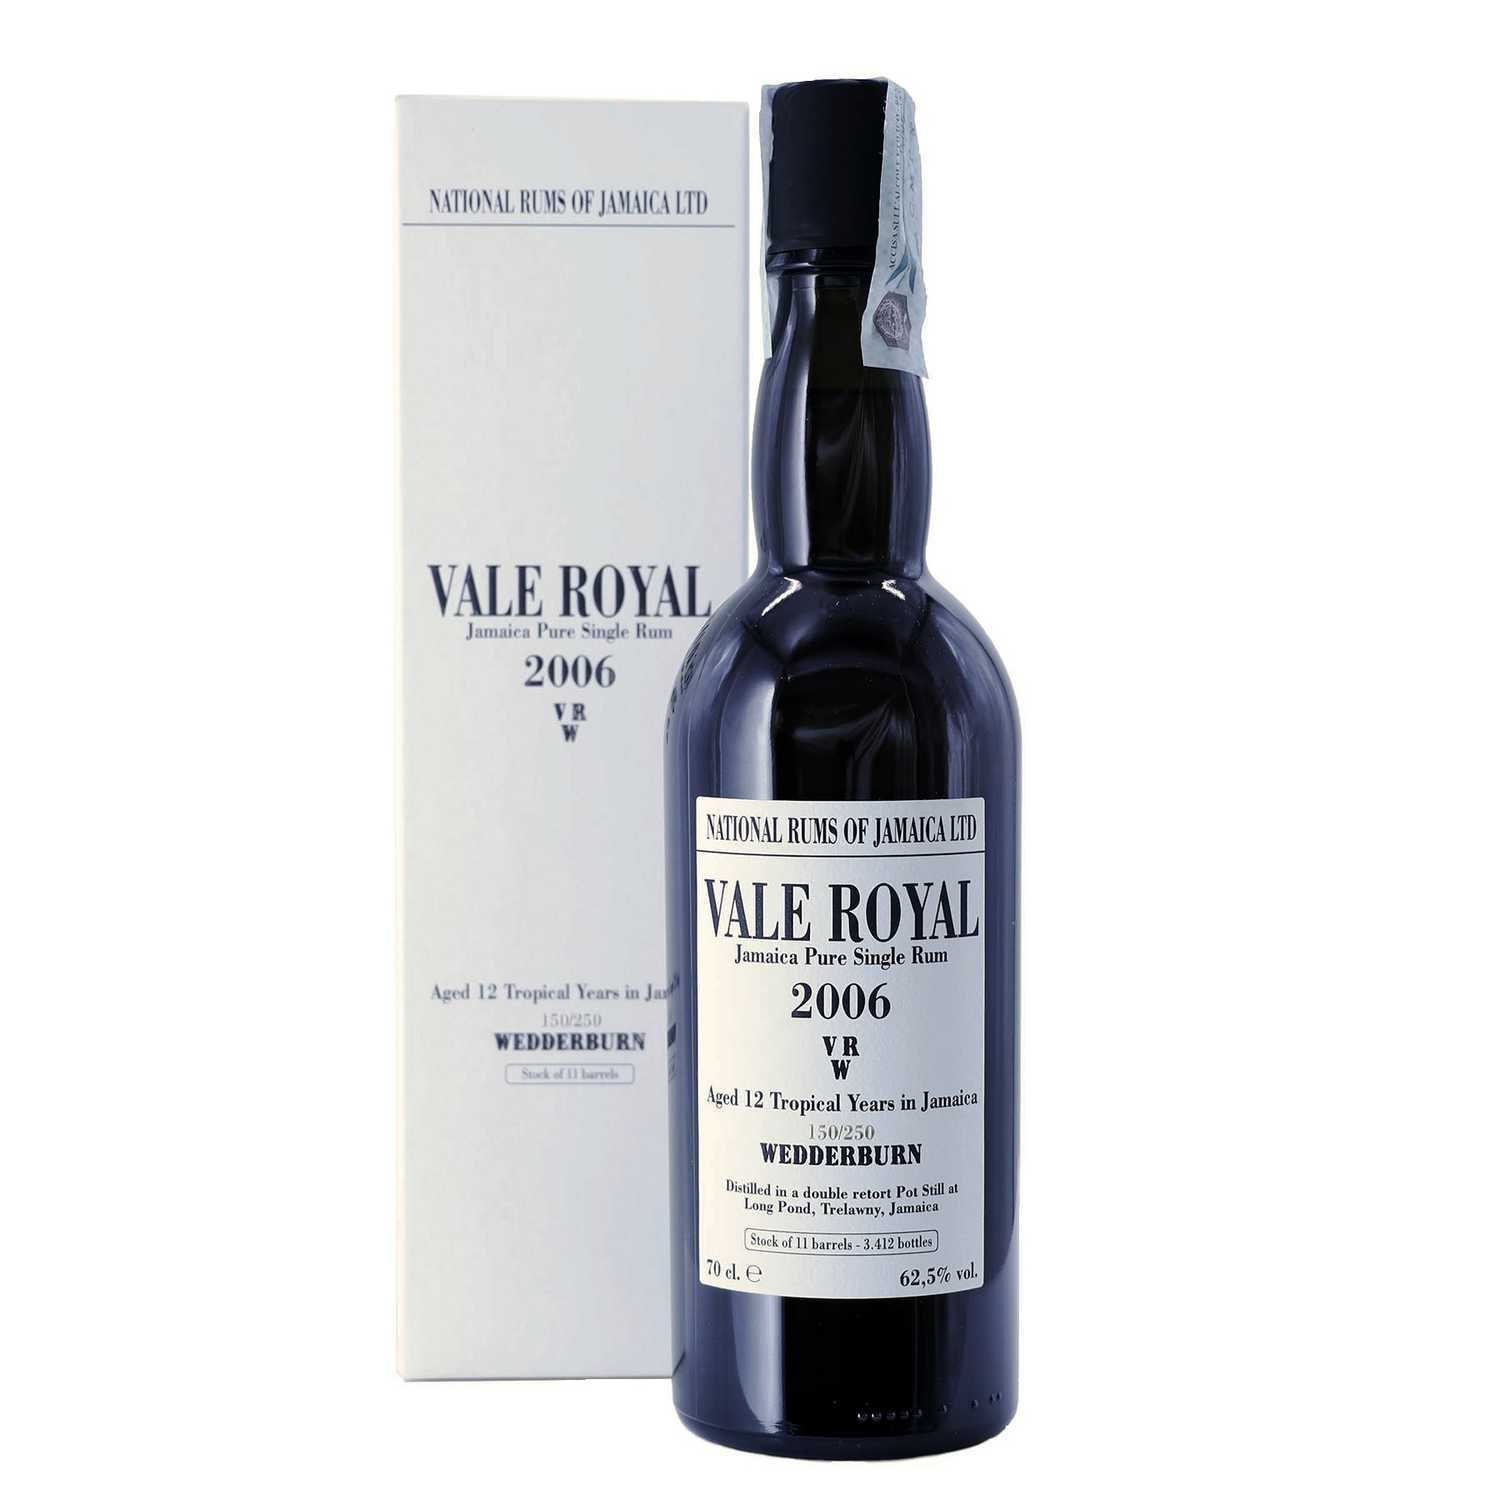 jamaica pure single rum vale royal vrw 2006 70 cl long pond - enoteca pirovano